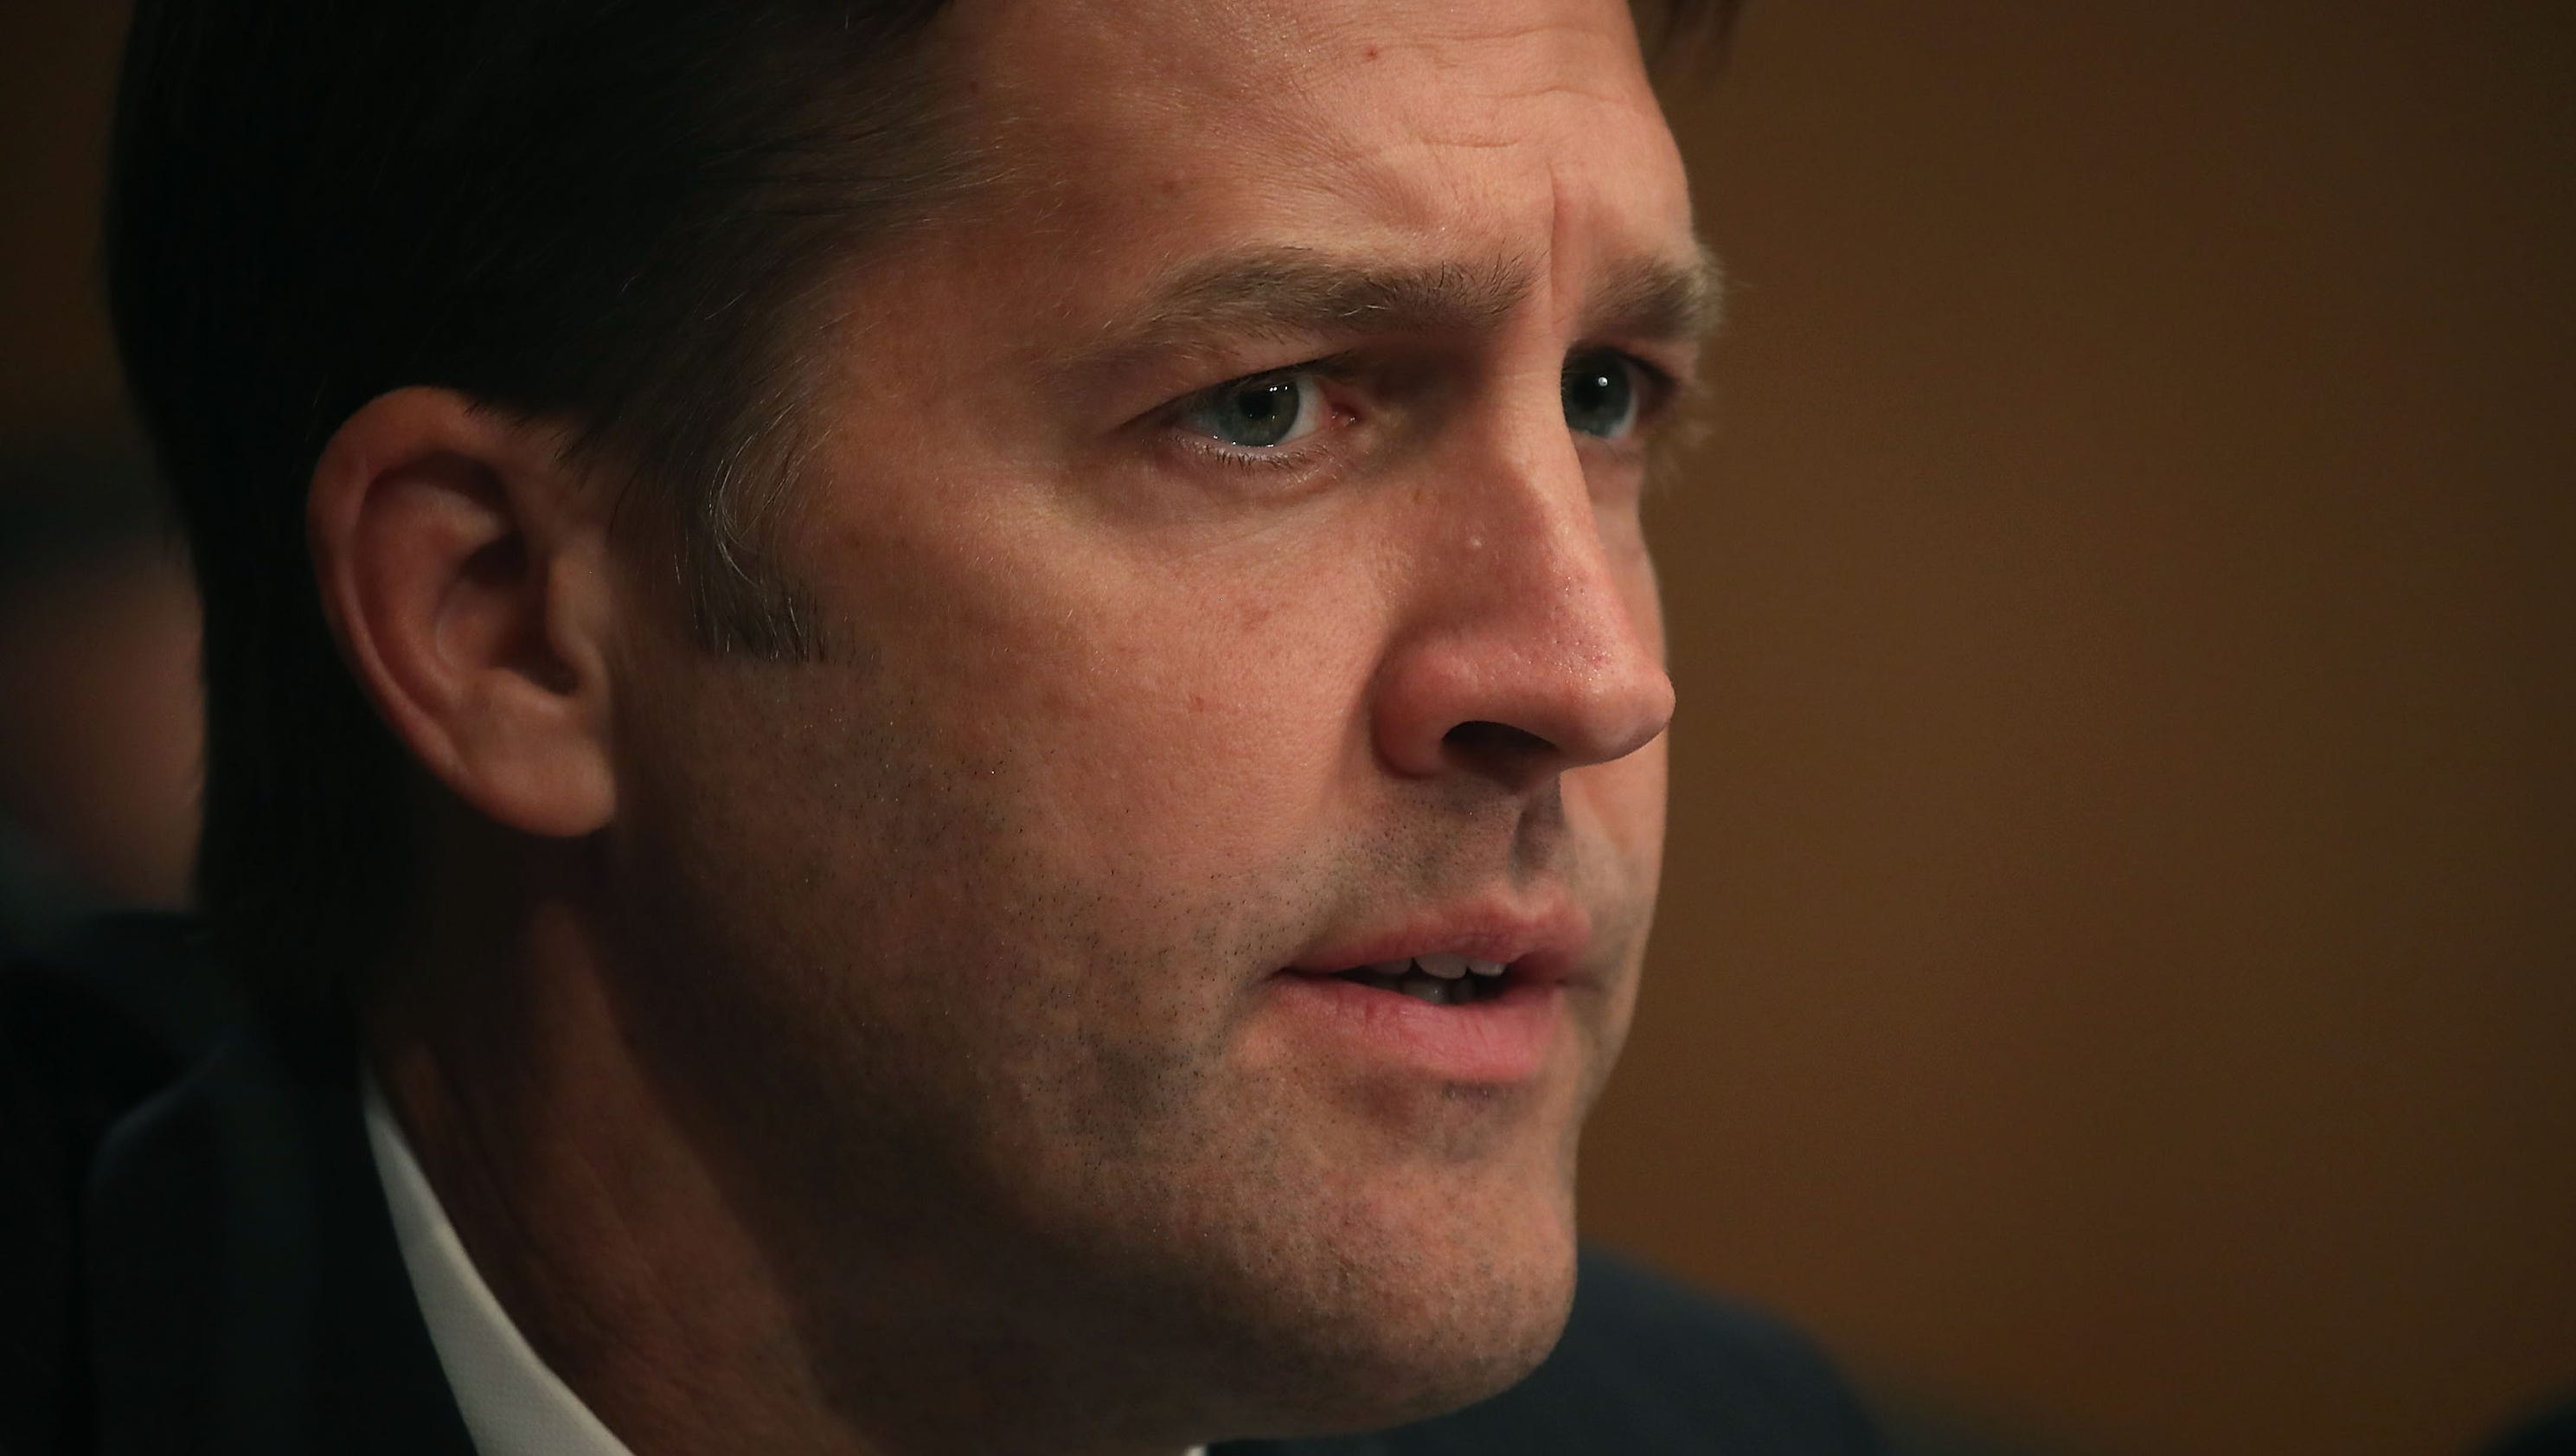 Sen. Ben Sasse says someone signed him up for dating site accounts